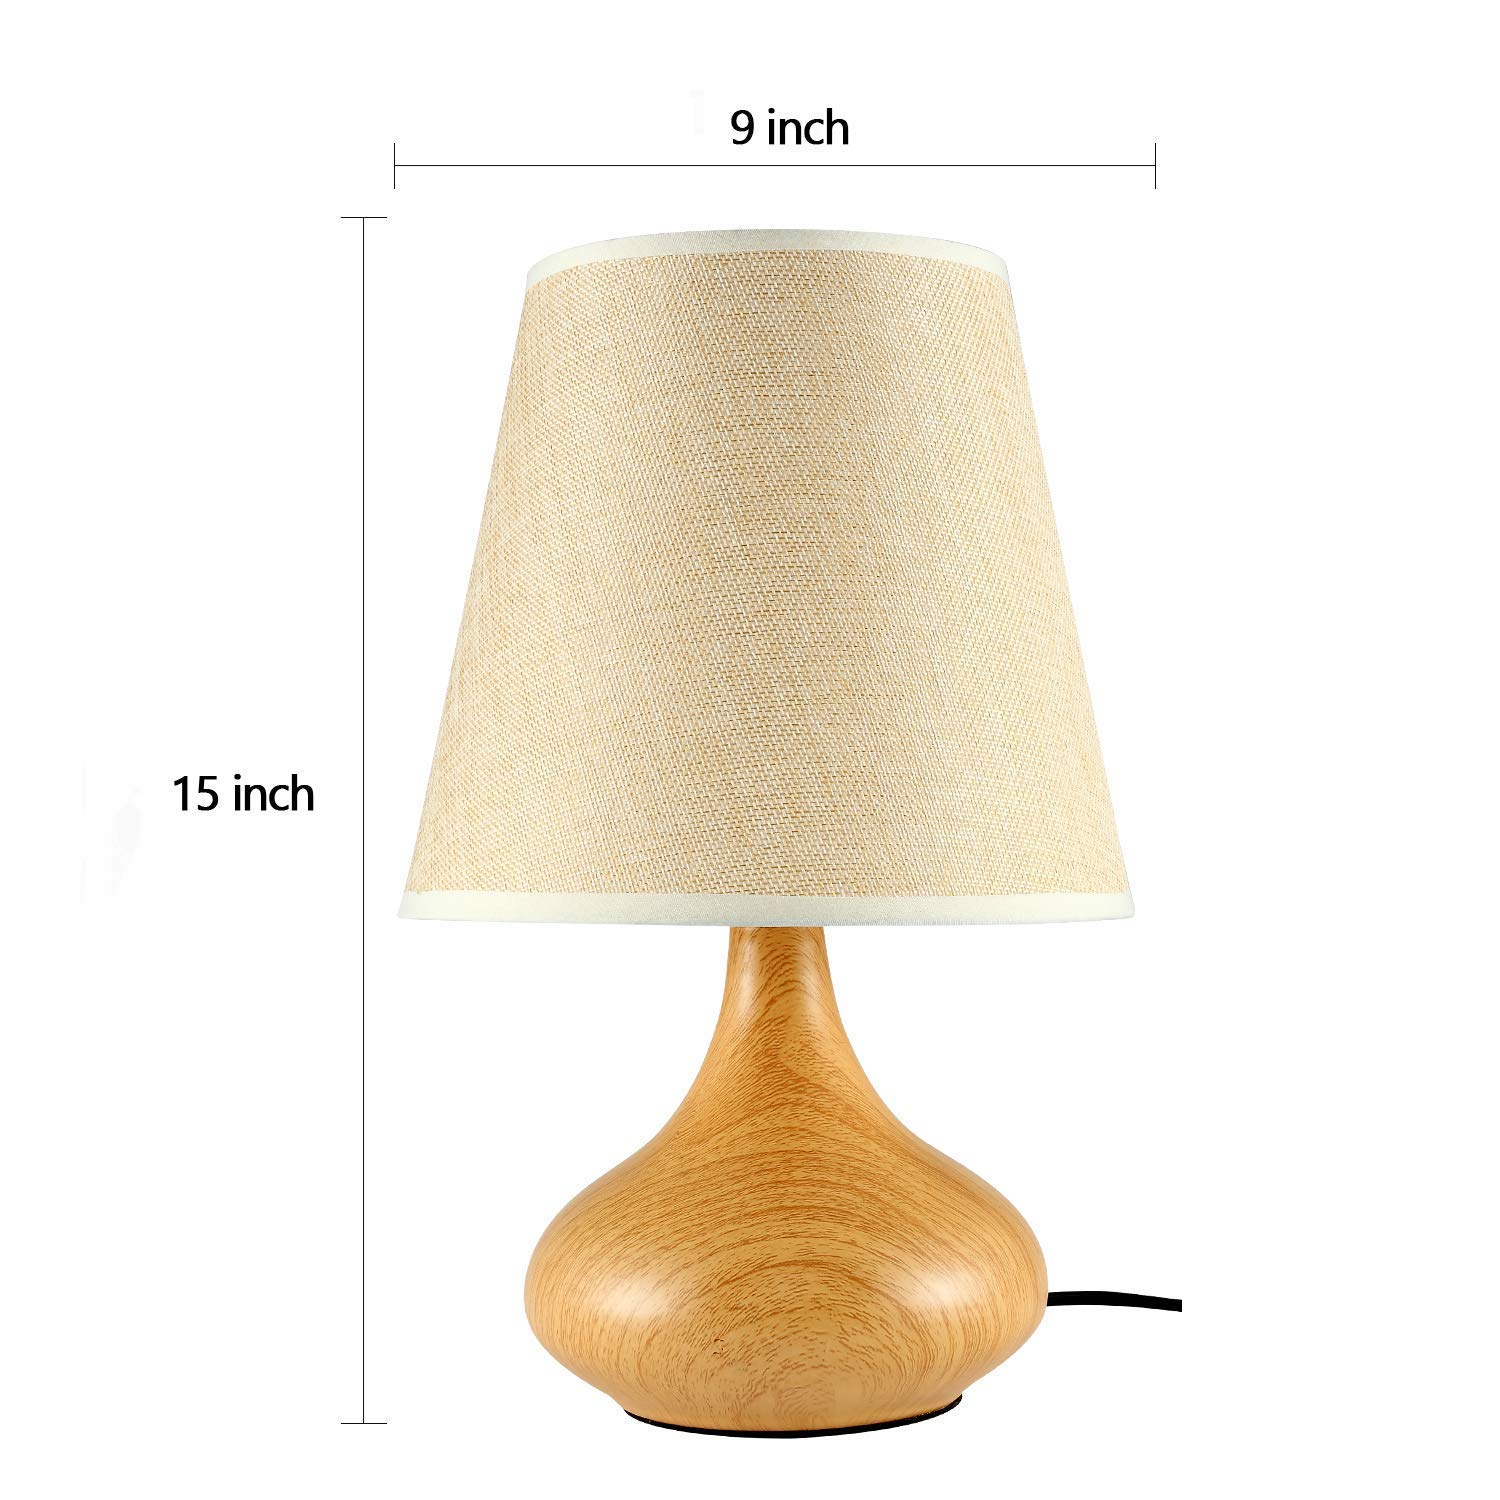 Night Light Lamp Nightstand Decorative Room Desk Lamp Metal Table Desk Light Table Lamps for Bedroom Lounge Orangehome Dining Room Living Room Hotel Kitchen